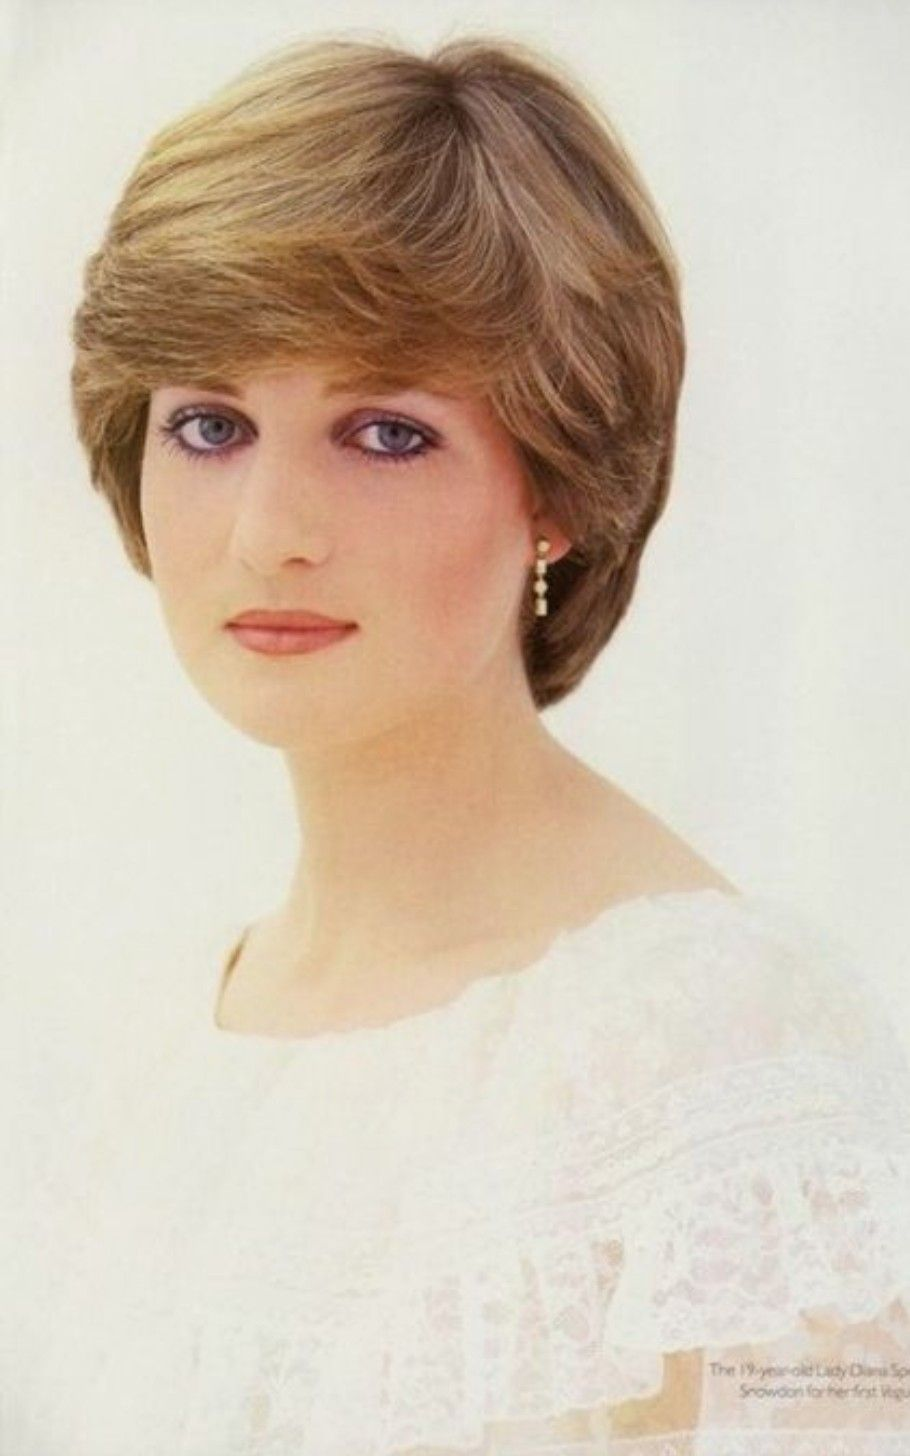 Angelic Lady Diana Spencer In Her 19 Princess Diana Hair Princess Diana Lady Diana